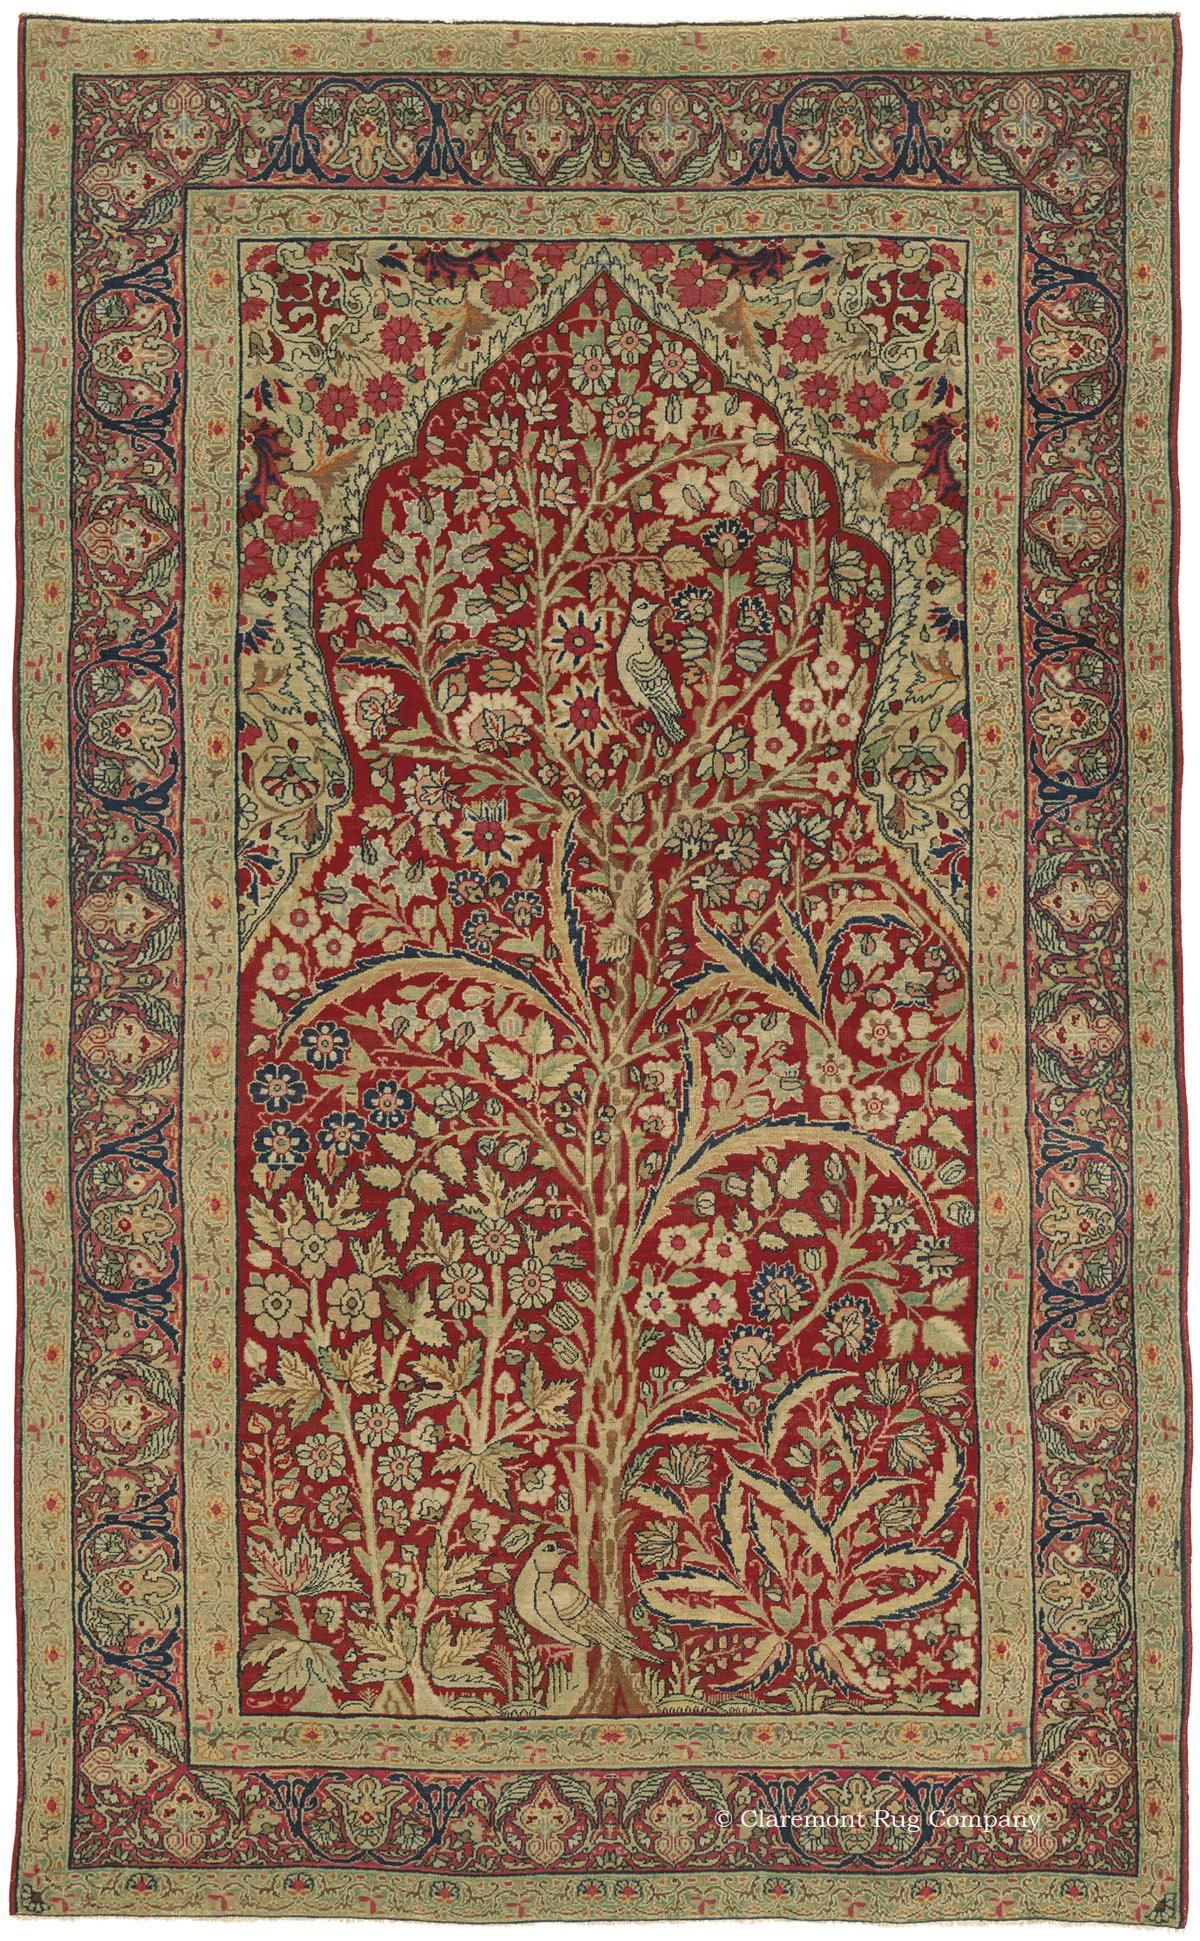 Kermanshah Tree Of Life Western Persian 4ft 5in X 7ft 3in Late 19th Century Antique Persian Carpet Claremont Rug Company Rugs On Carpet